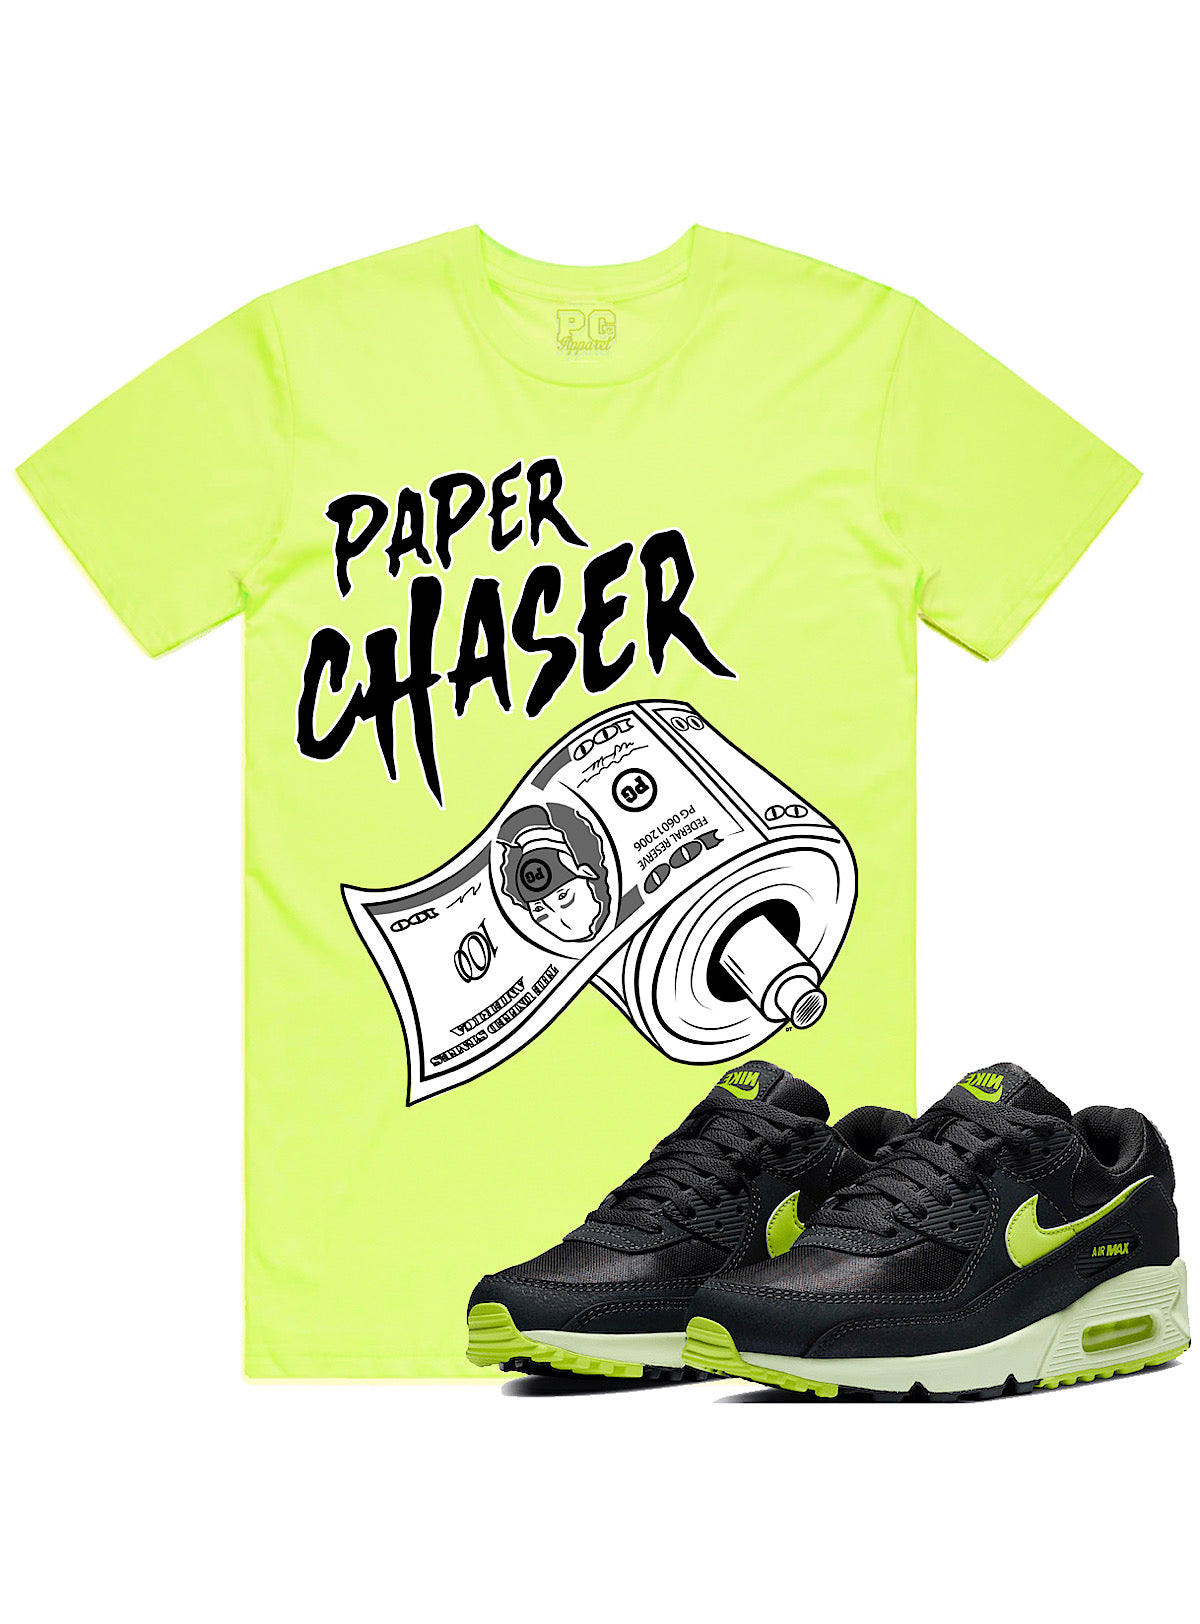 PG Apparel T-Shirt - Paper Chaser - Neon - PC100